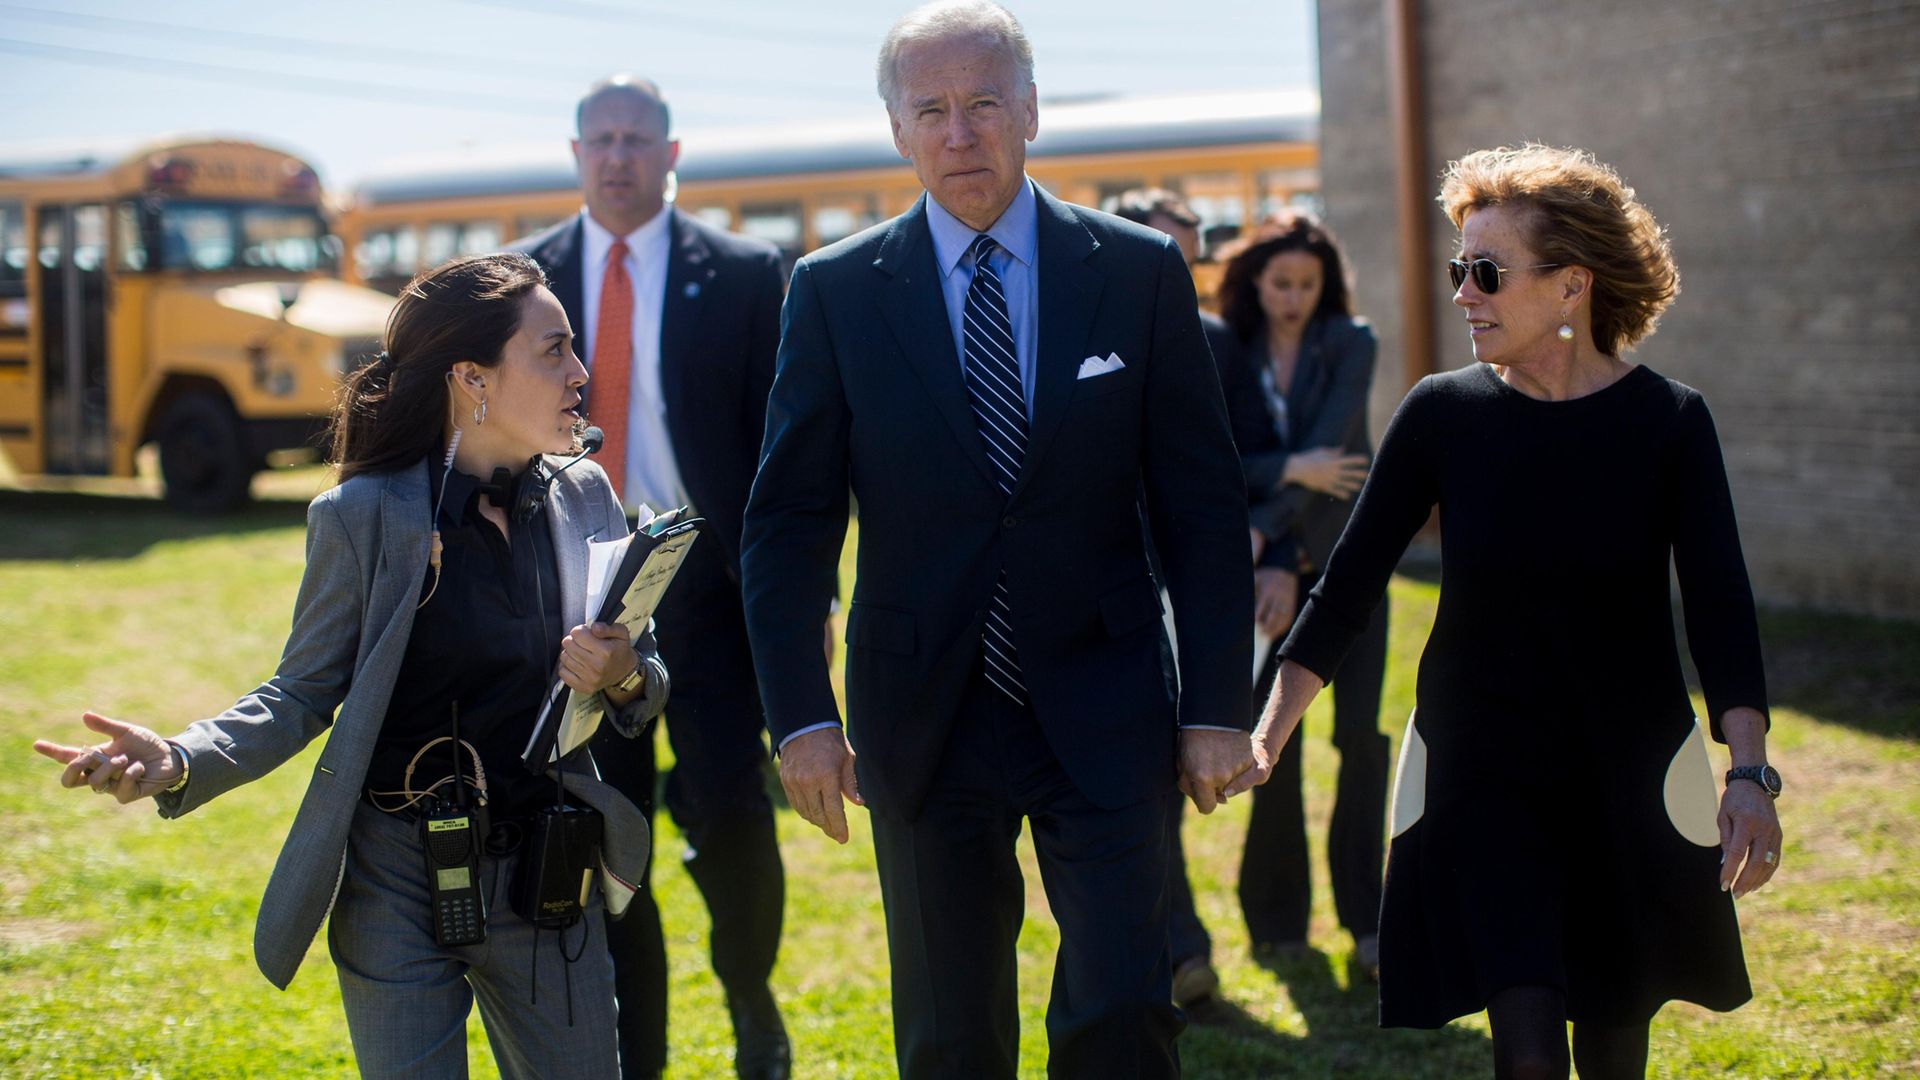 Joe Biden with his sister, Valerie Biden Owens, briefed by his staffer Liz Hart - Credit: The Washington Post via Getty Images